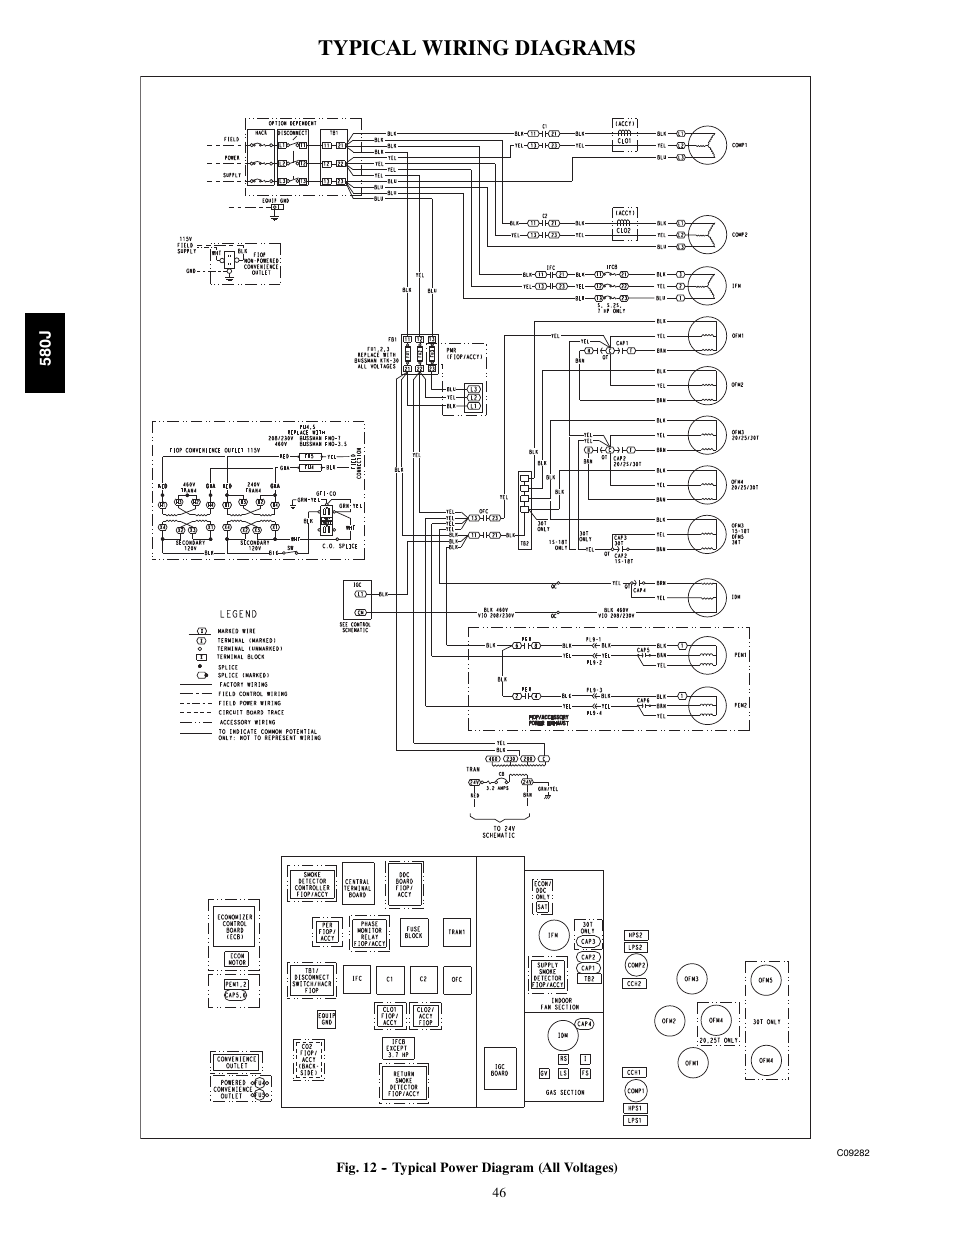 Typical Wiring Diagrams Bryant Legacy 580j User Manual Page 46 60